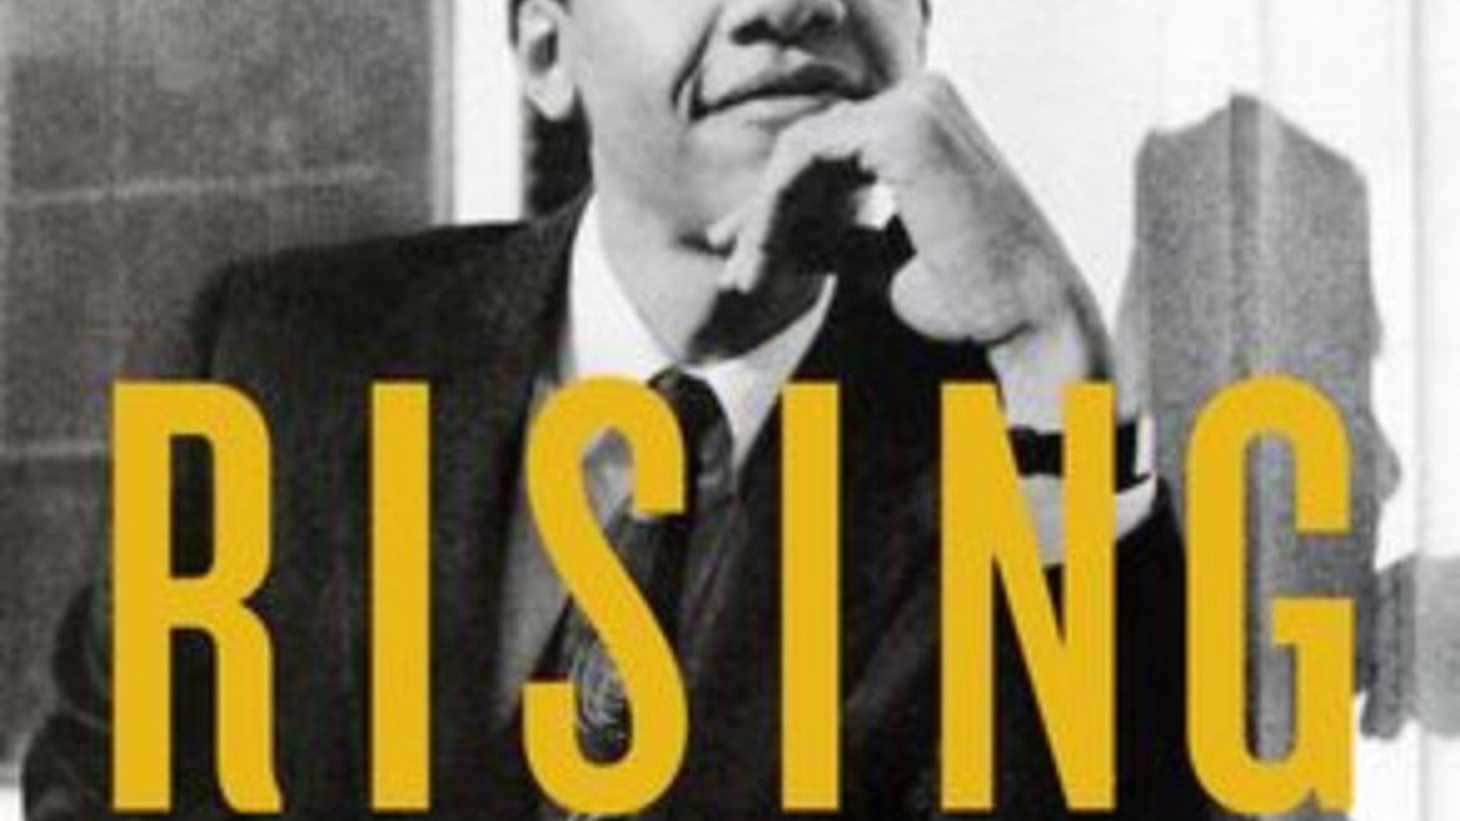 Obama himself spent eight hours reading the manuscript. But Rising Star: The Making of Barack Obama is very much an unauthorized biography. Pulitzer Prize-winning author David Garrow describes how the 44th president shaped his personal life to create the right political image.